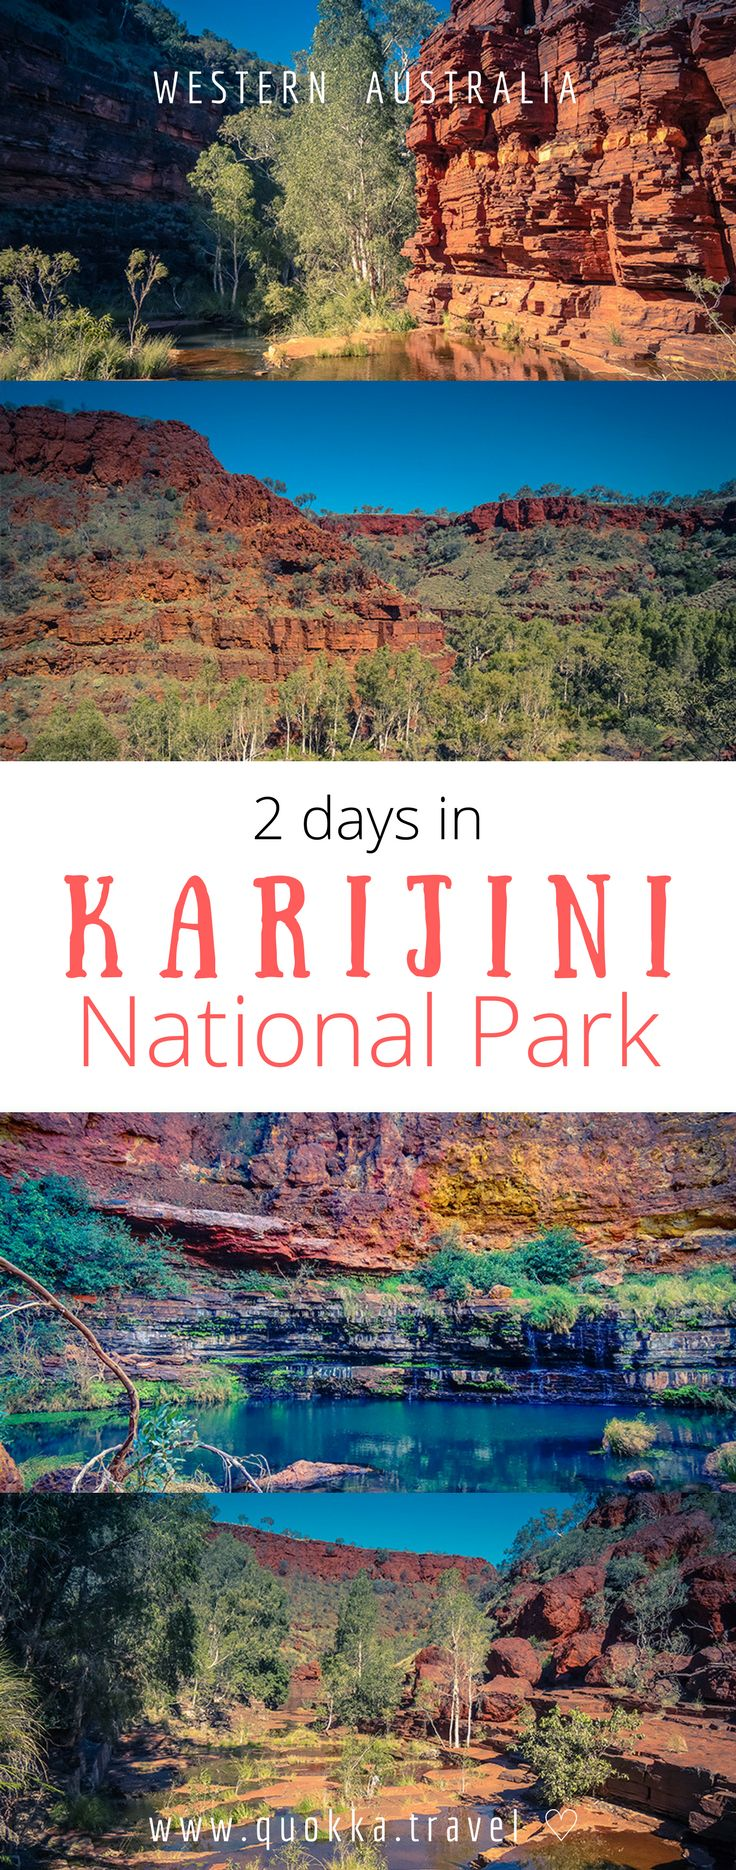 Karijini is Western Australias second largest park and offers many adventurous things to those who love nature. The huge red mountain formations, waterfalls and breathtaking gorges are stunning. It is fair to say that Karijini has been one of the most beautiful destinations I have been to in Australia. In this post we share why should you visit Karijini in Western Australia, including what to do in two days. We also share all about hiking and hiking trail in Karijini National Park...